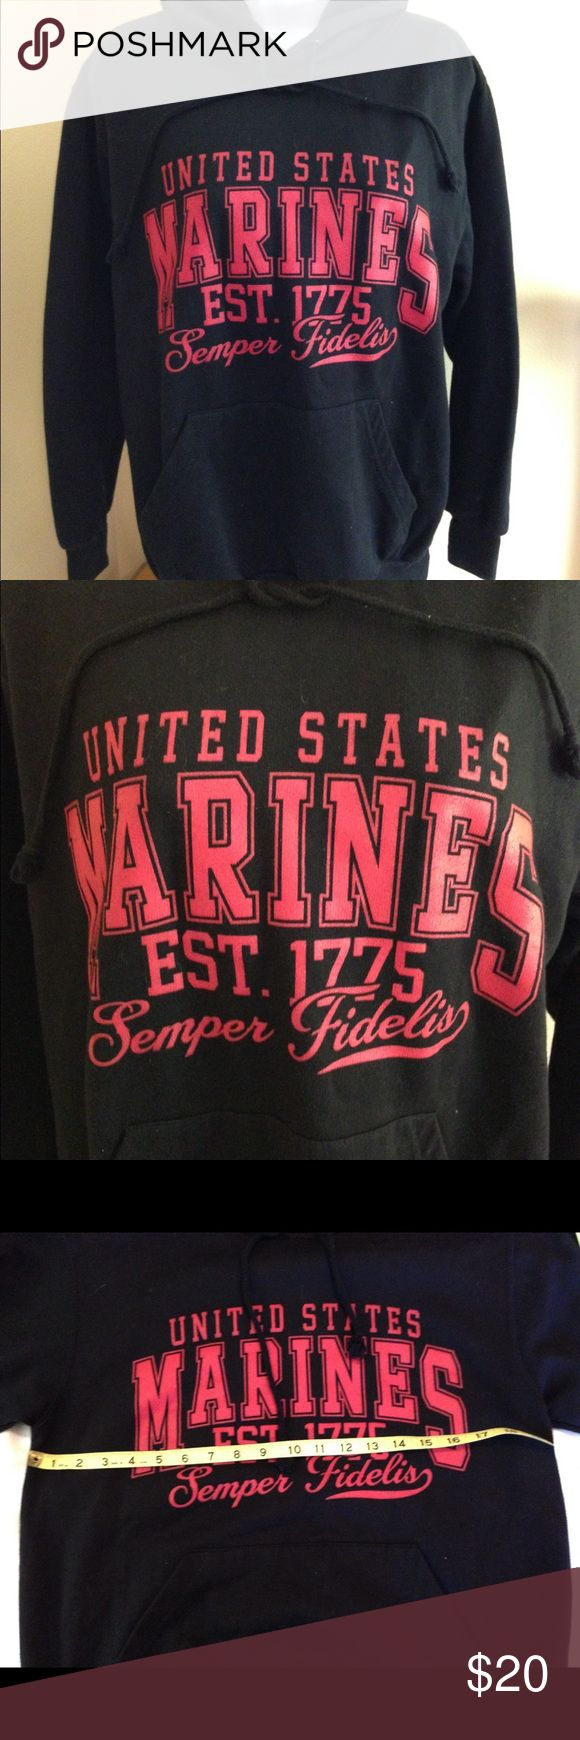 """United States Marines Hoodie Sz S United States Marines Hoodie Sz M label in great preowned condition. Armpit to armpit 19"""", looks like a youth size. Will fit ladies small. See pics. mv sport Tops Sweatshirts & Hoodies"""